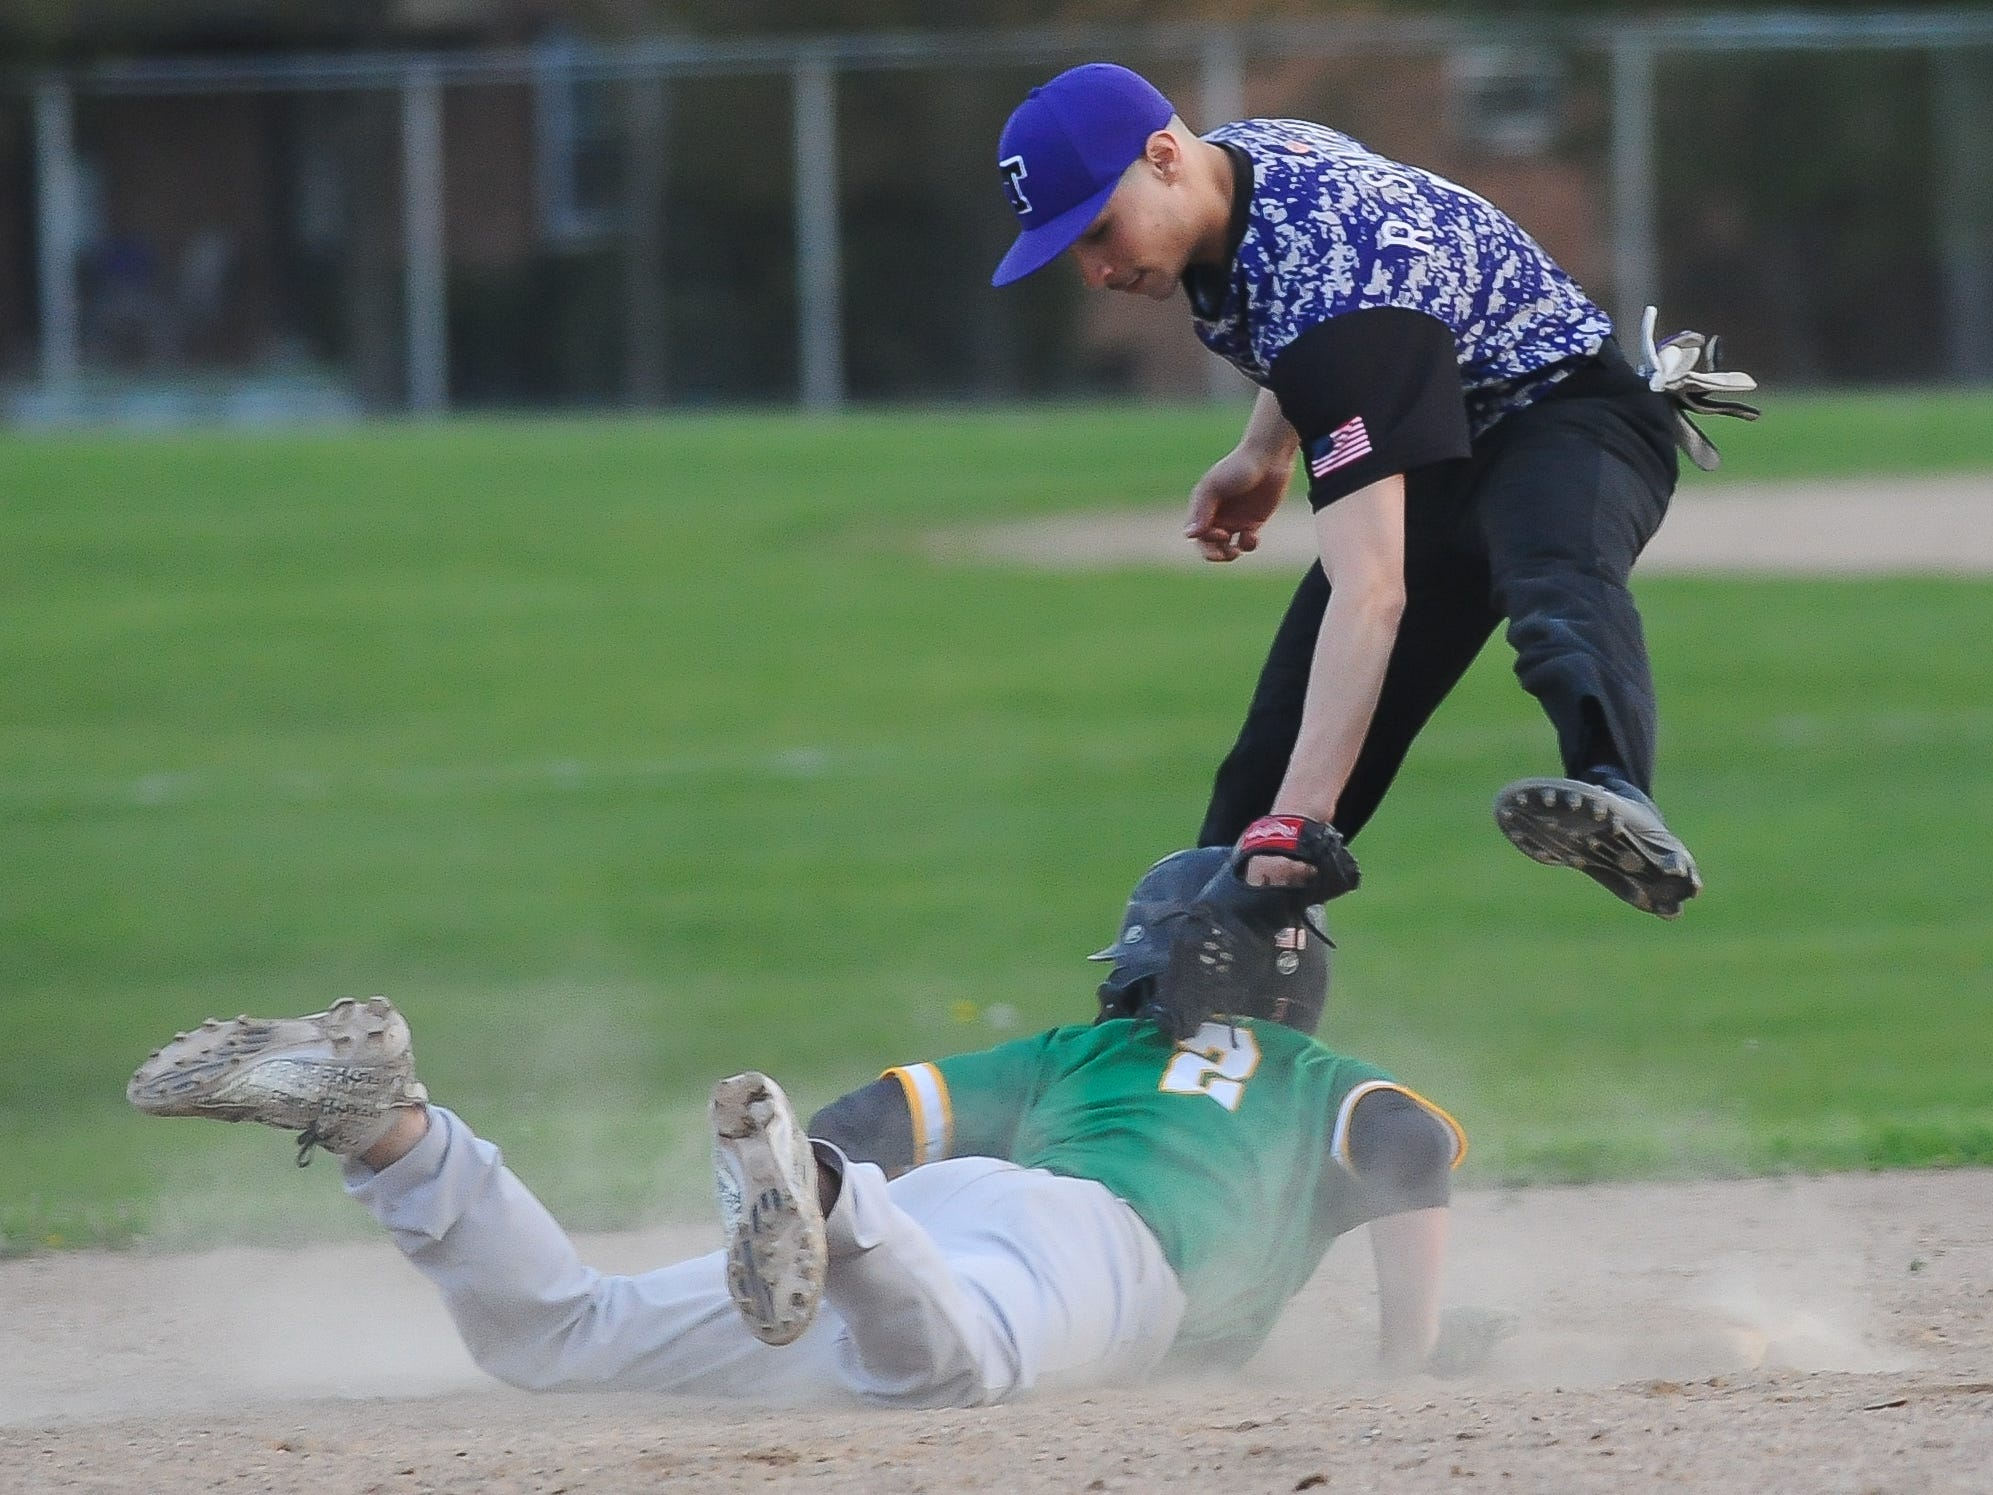 Milwaukee Hamilton's Antonio Barachy beats the tag by Milwaukee Bradley Tech second baseman Raudie Sanchez on a pickoff attempt in a City Conference baseball game Tuesday, May 14, 2019, at Hogan Field at Hamilton High School.